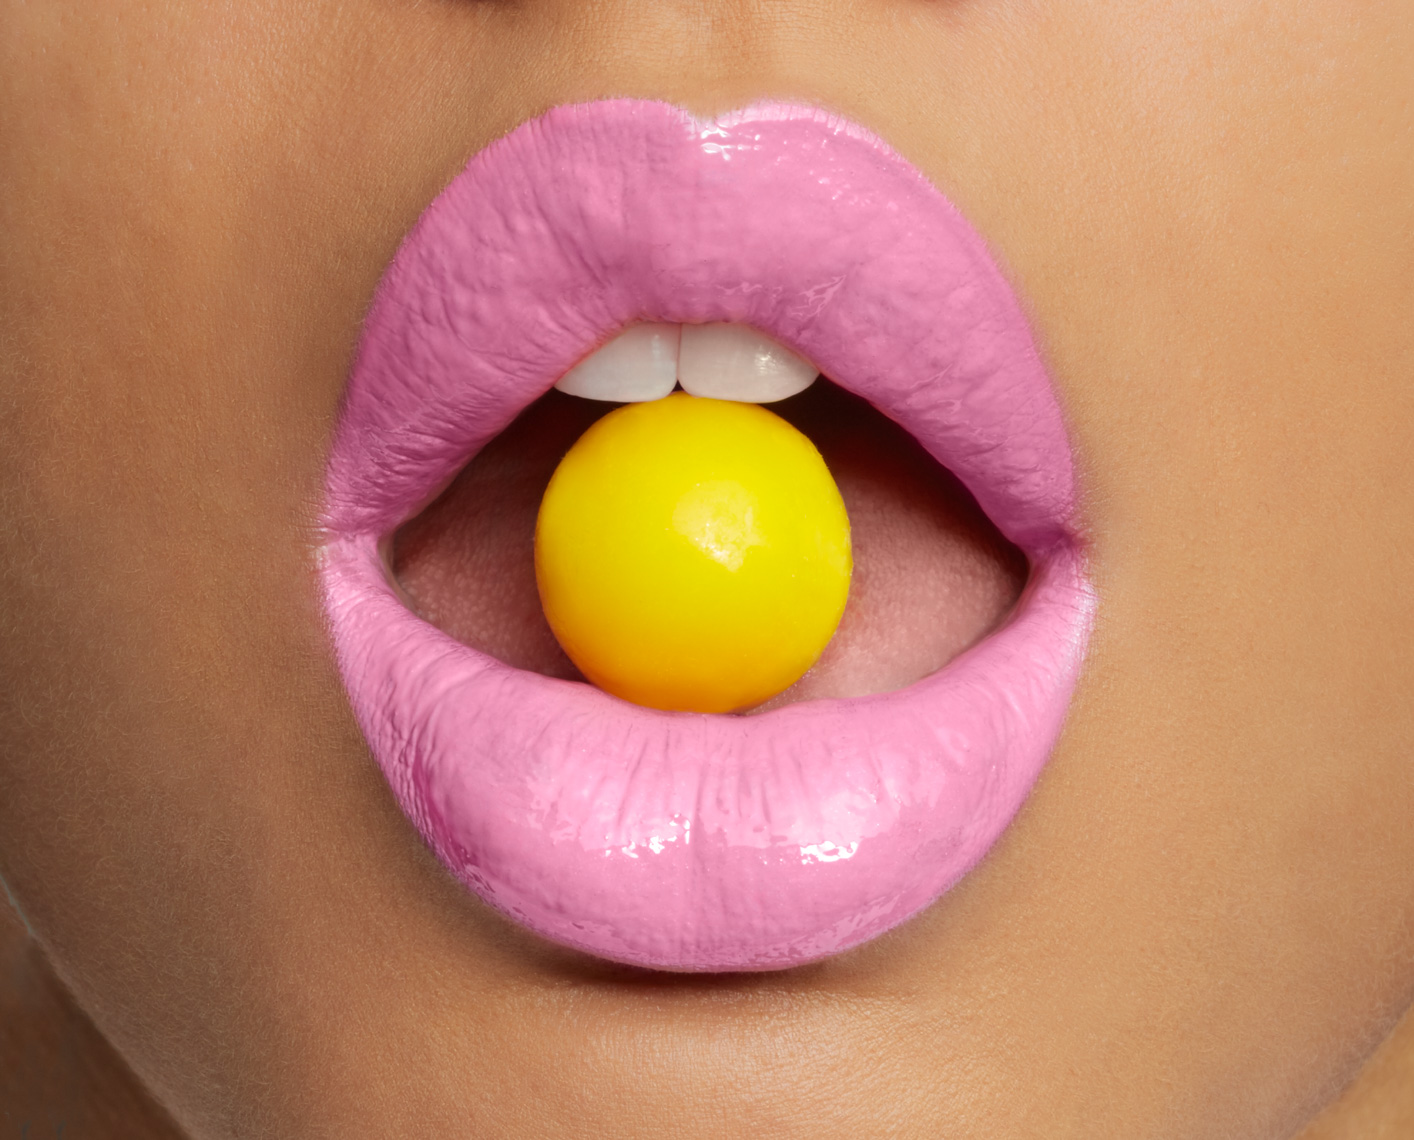 woman with pink lipstick and yellow candy between teeth San Francisco product photographer